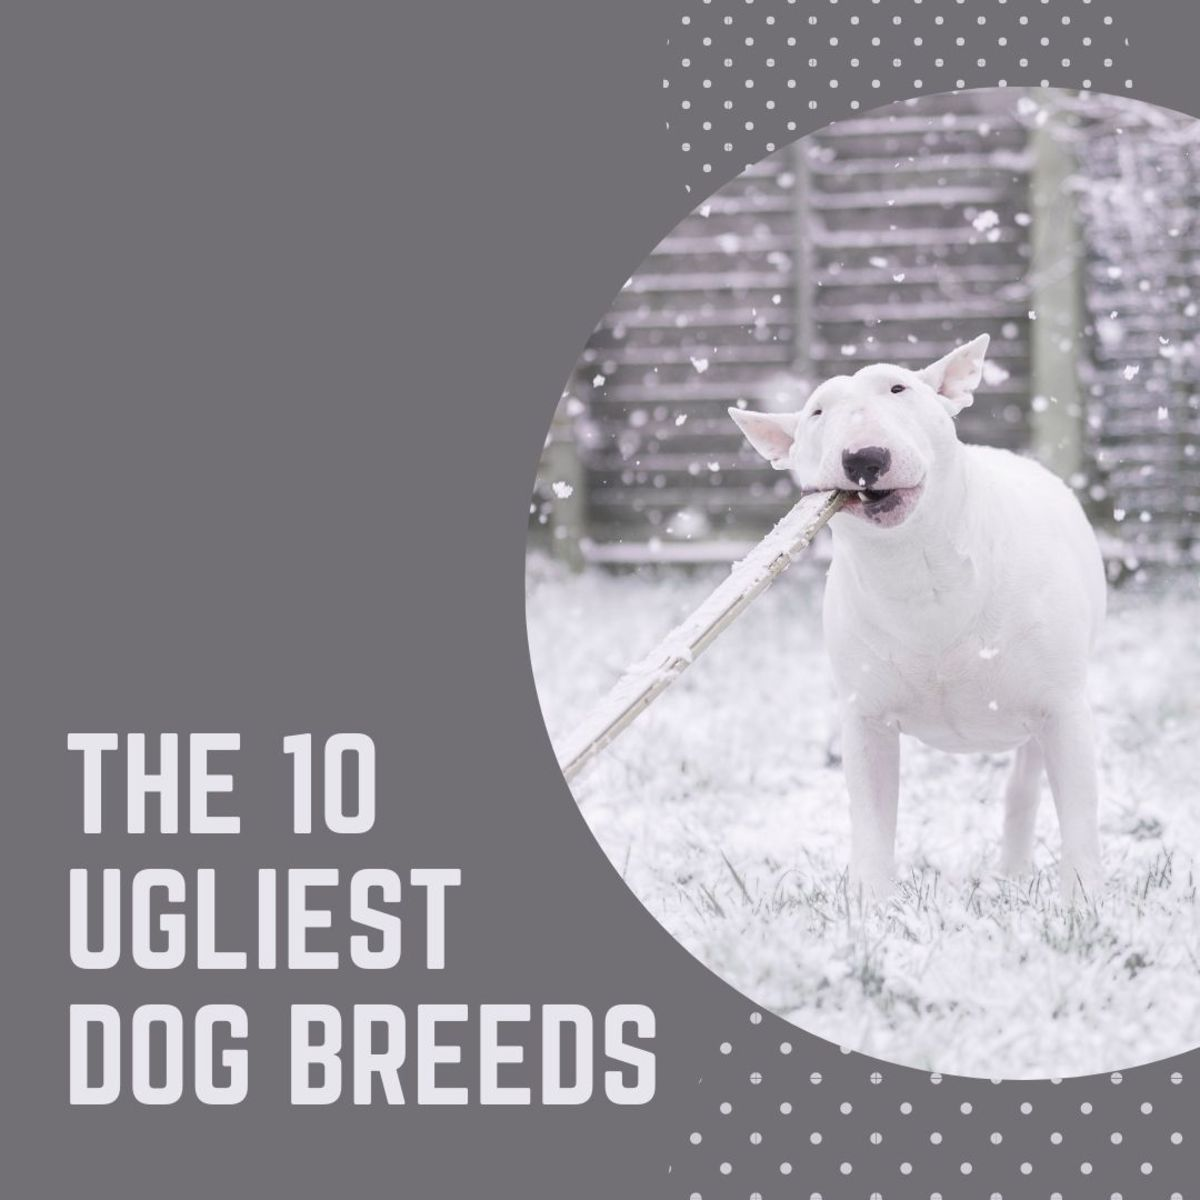 Ugly dogs: the 10 ugliest dog breeds